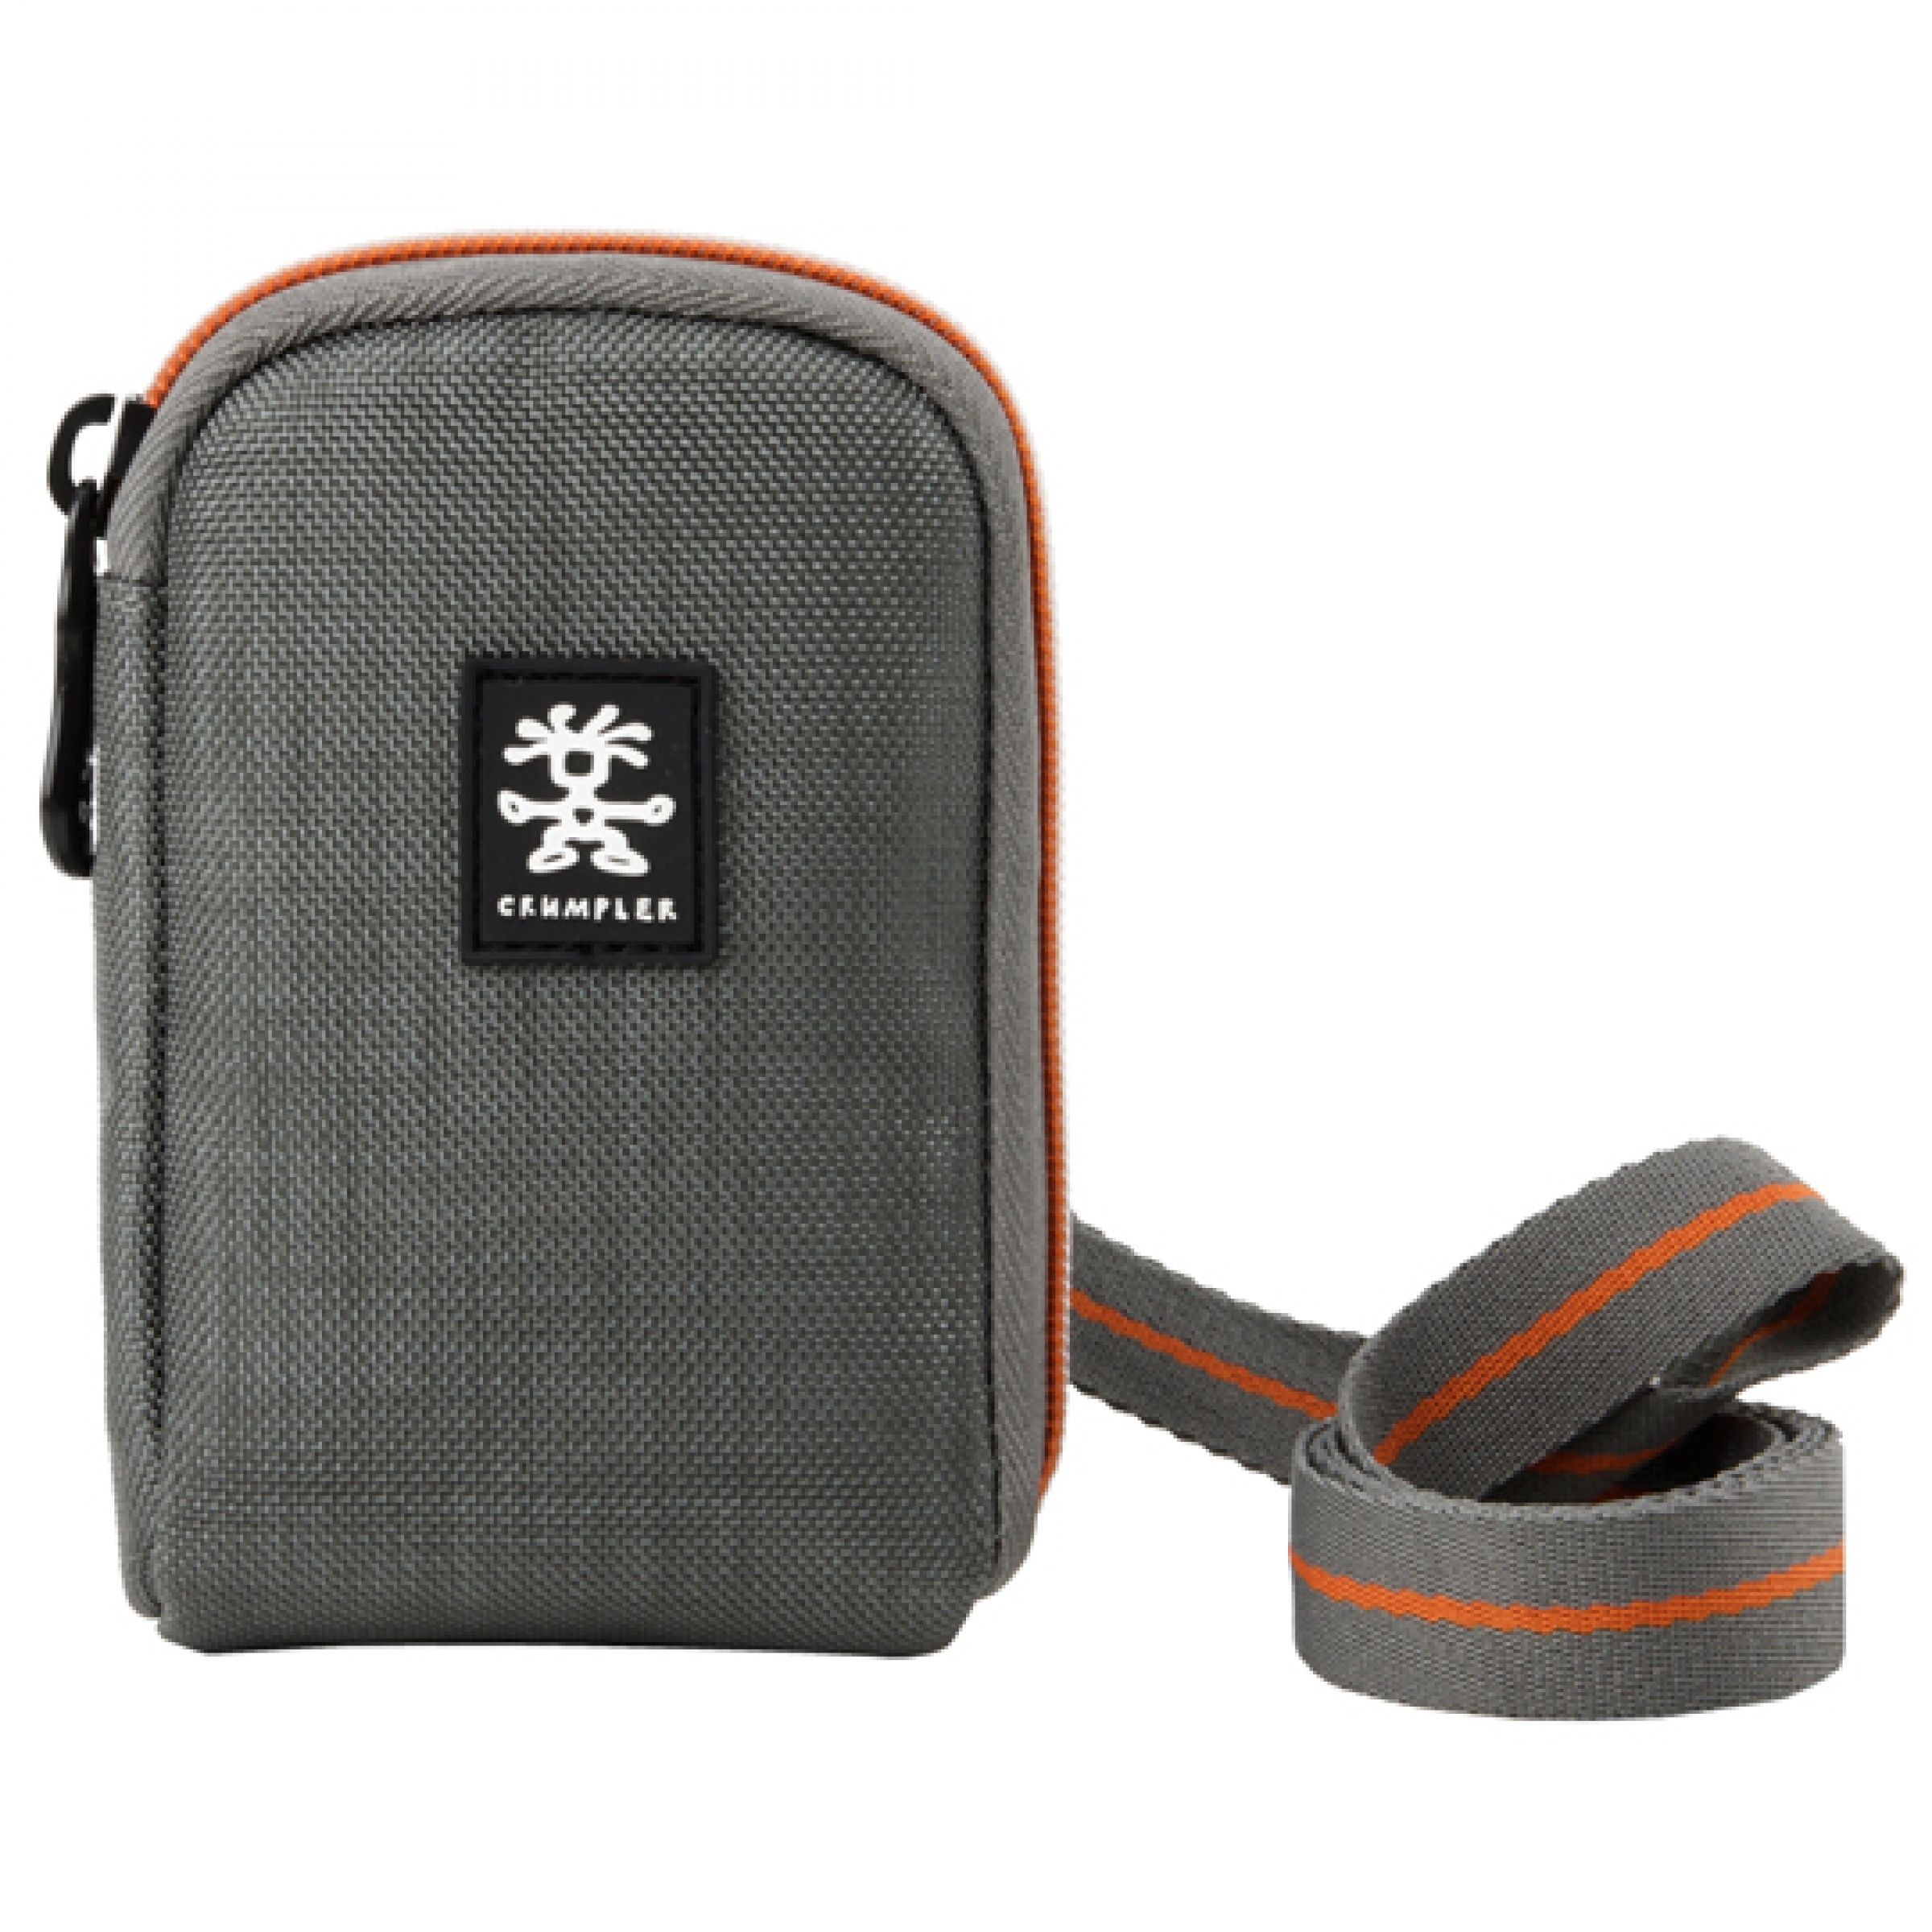 Crumpler-Jackpack-70-DK-Mouse-Grey-Burned-Orange